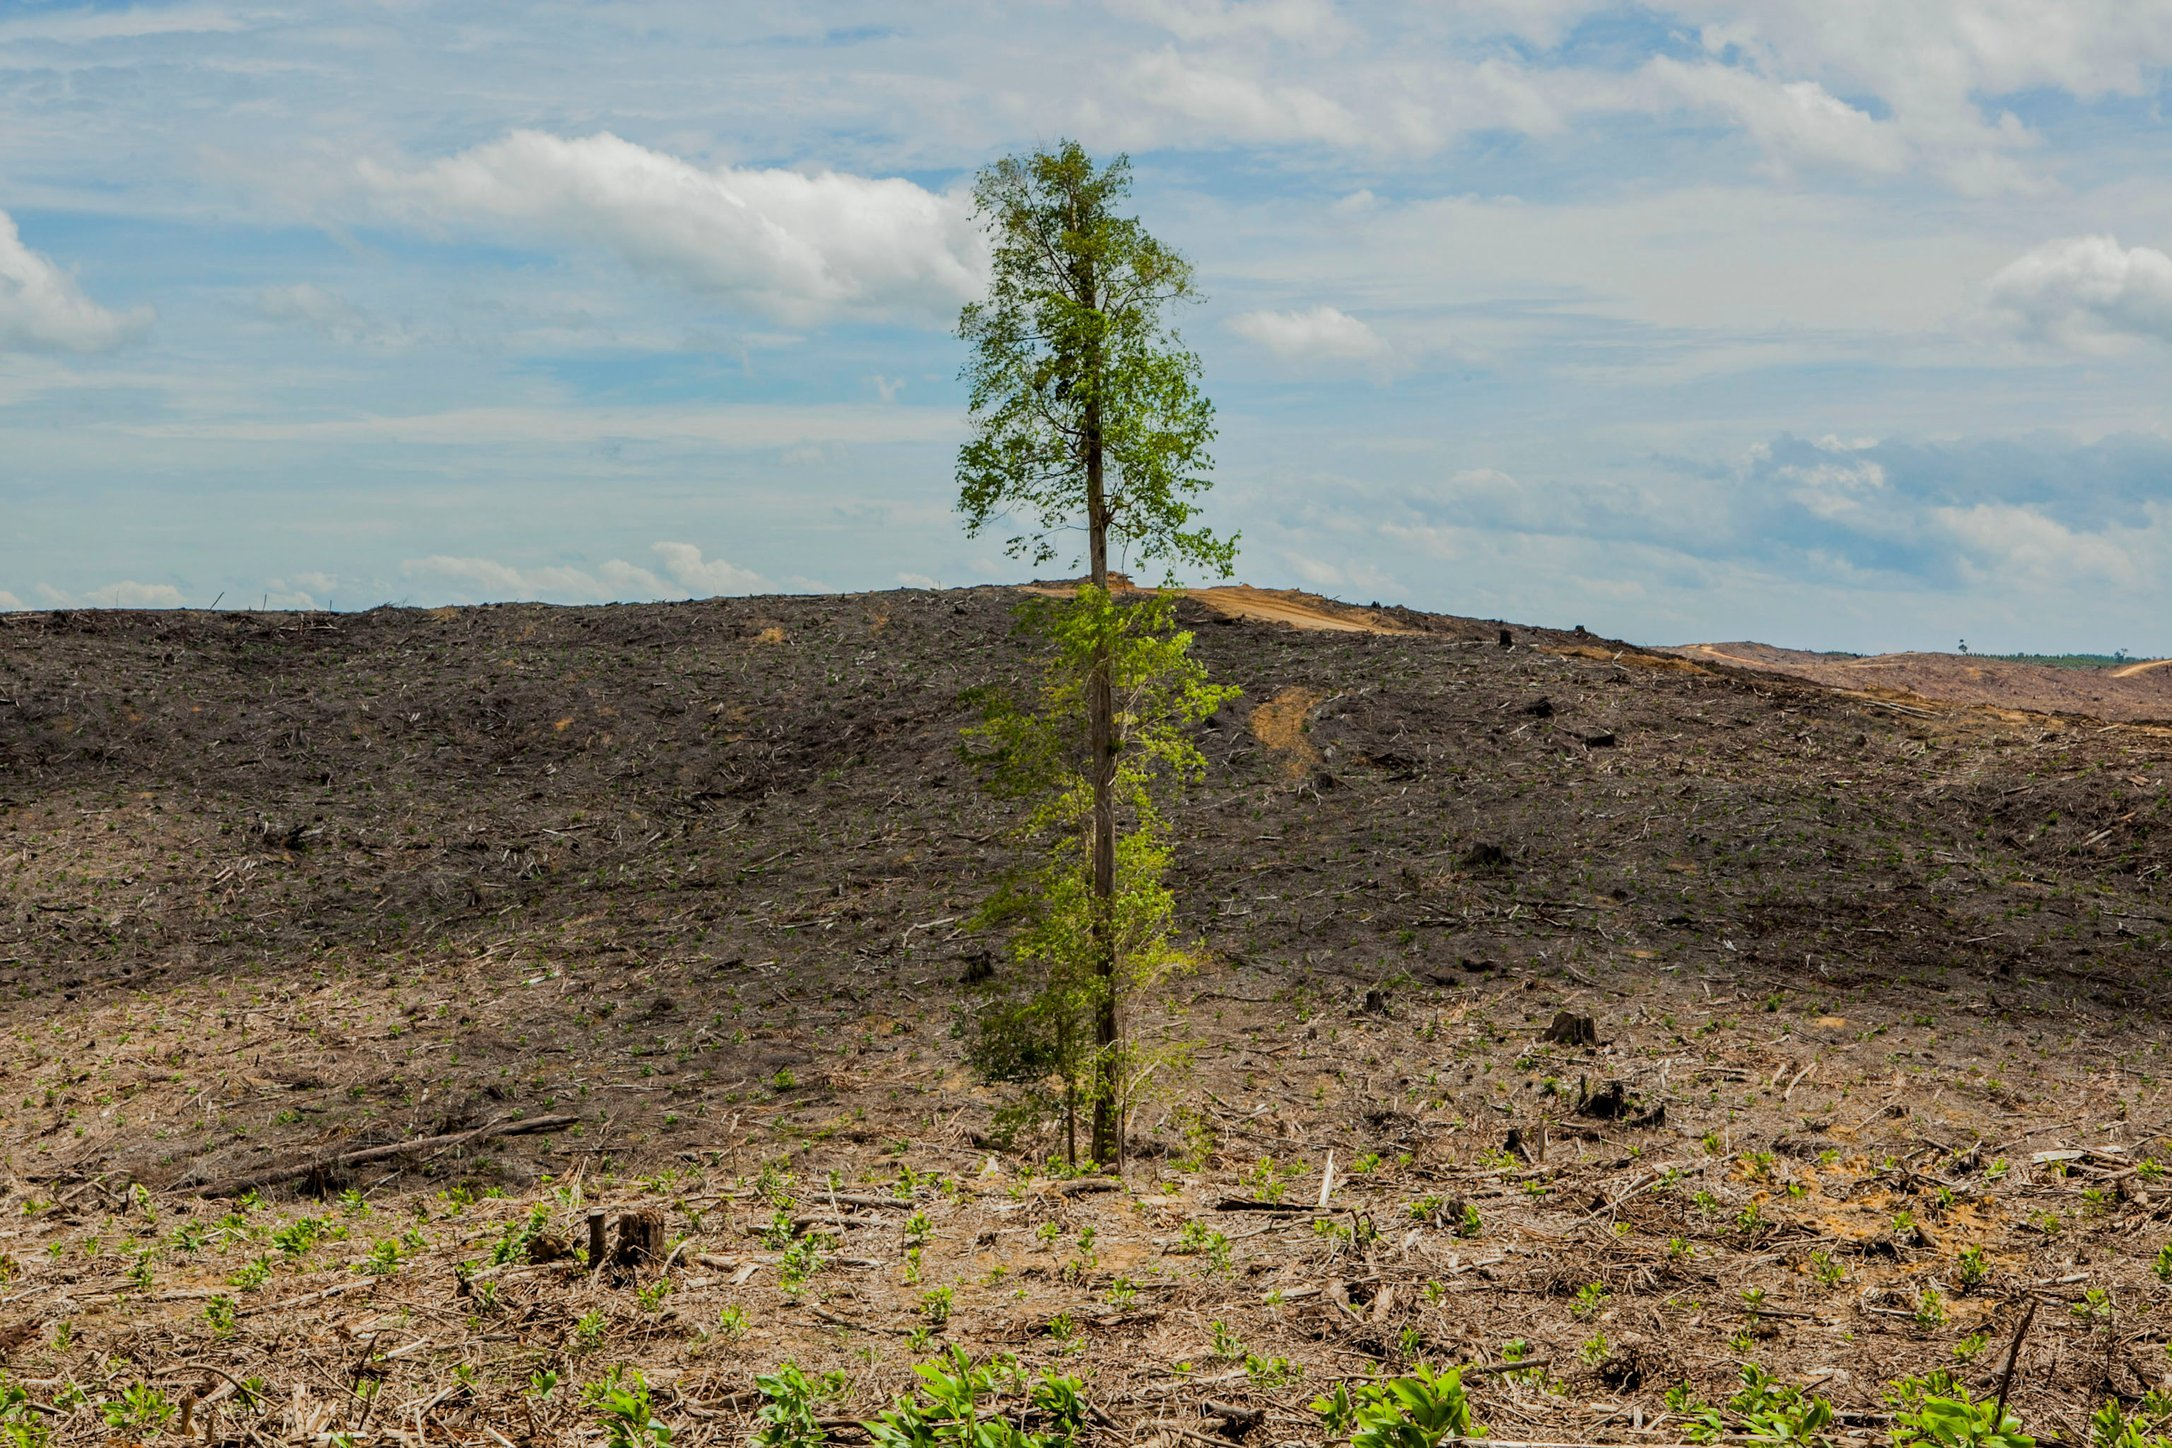 stop deforestation -deforestation- deforestation is becoming increasingly distressing the accelerating destruction of rainforests is now being recognised.